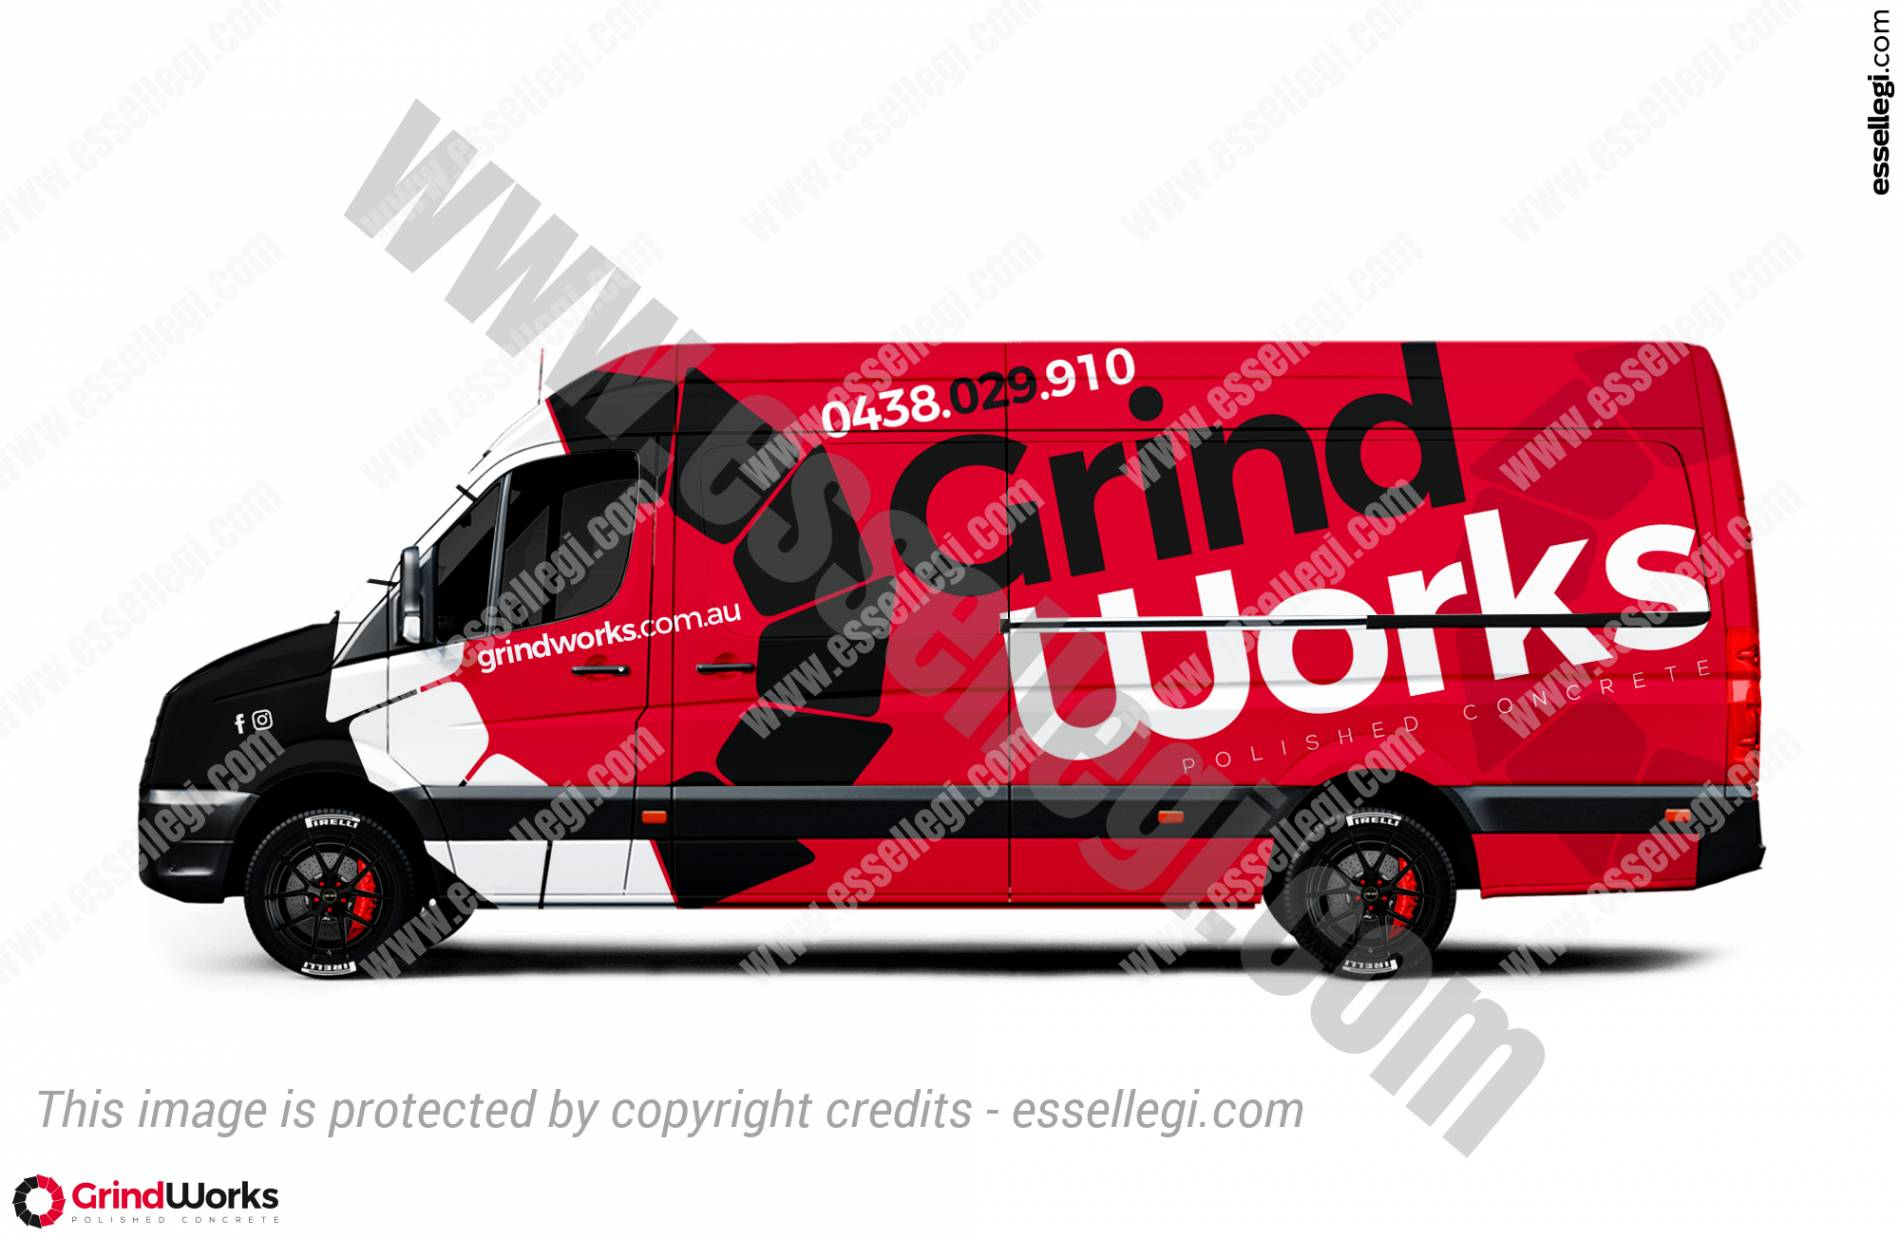 GRINDWORKS | VAN WRAP DESIGN 🇦🇺